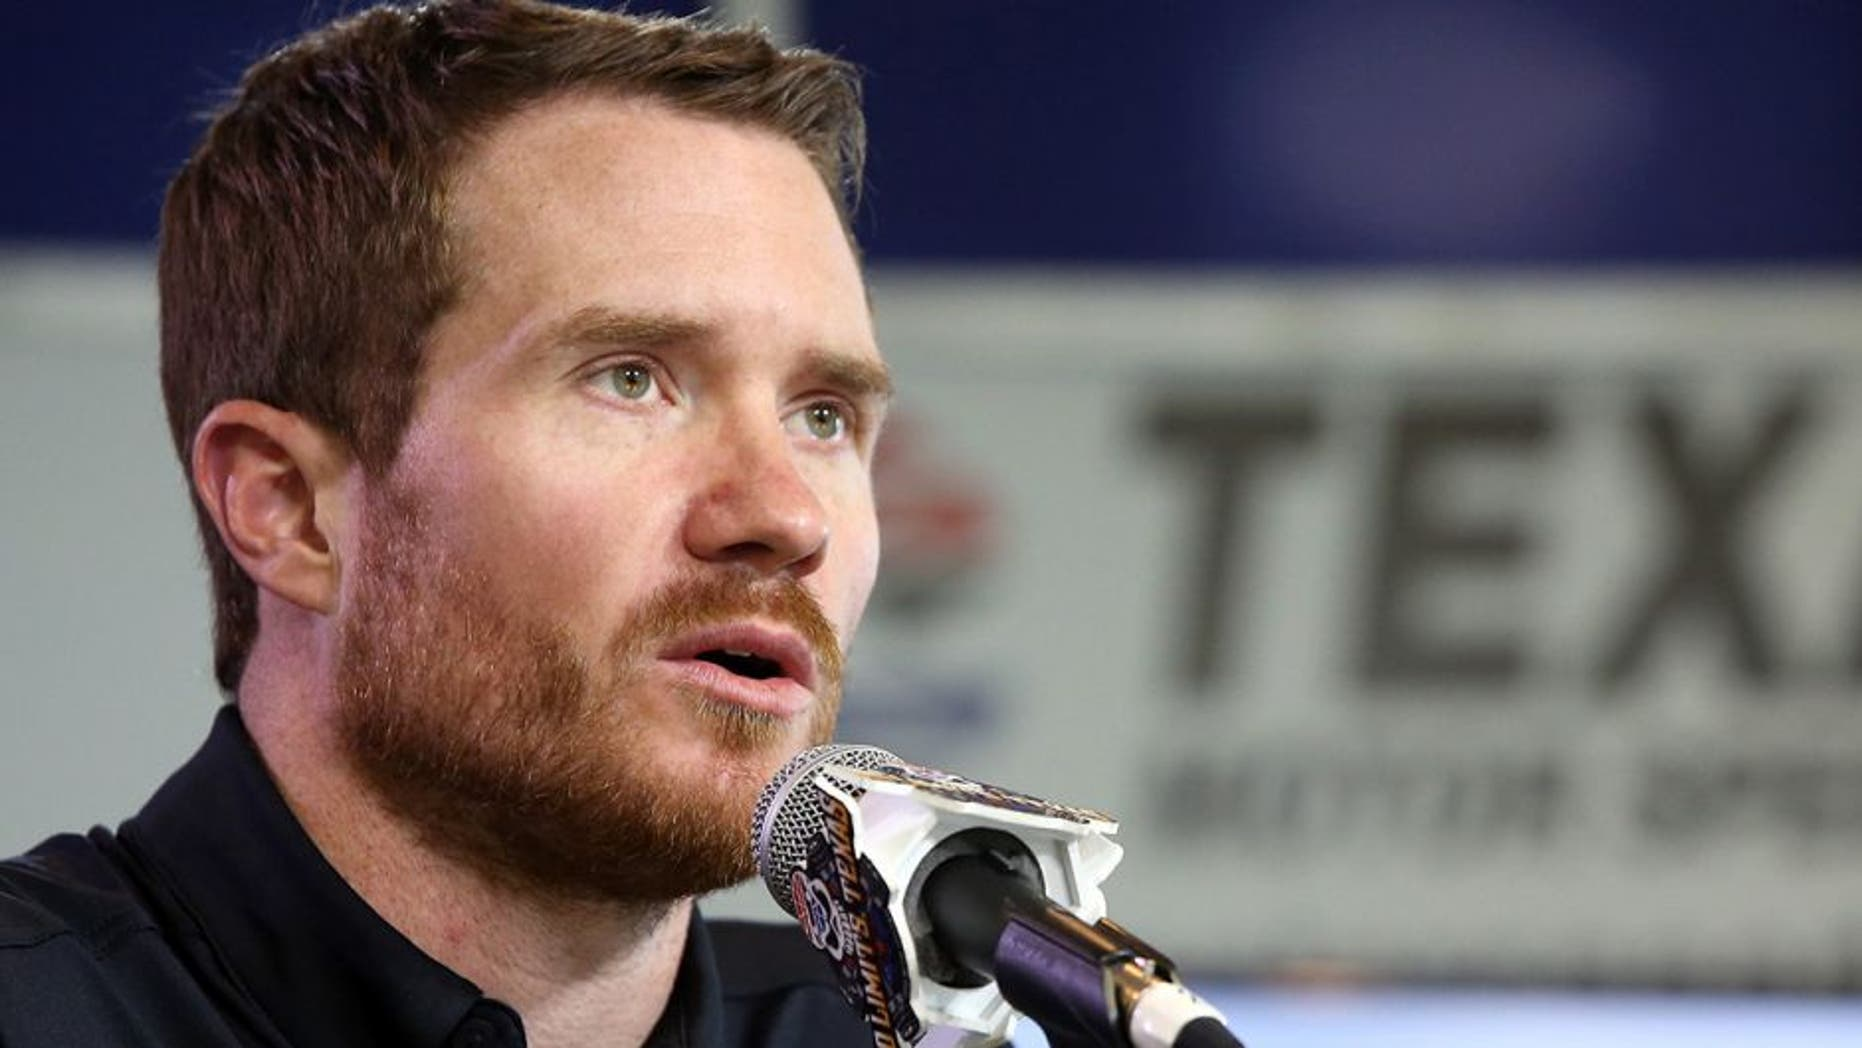 FORT WORTH, TEXAS - APRIL 07: NASCAR Sprint Cup Series driver Brian Vickers speaks during a press conference as Stewart-Haas Racing unveils the No. 14 TaxAct Military Files Free Chevrolet that Vickers will race in the Duck Commander 500 on Saturday night at Texas Motor Speedway on April 7, 2016 in Fort Worth, Texas. (Photo by Sean Gardner/Stewart-Haas Racing via Getty Images)